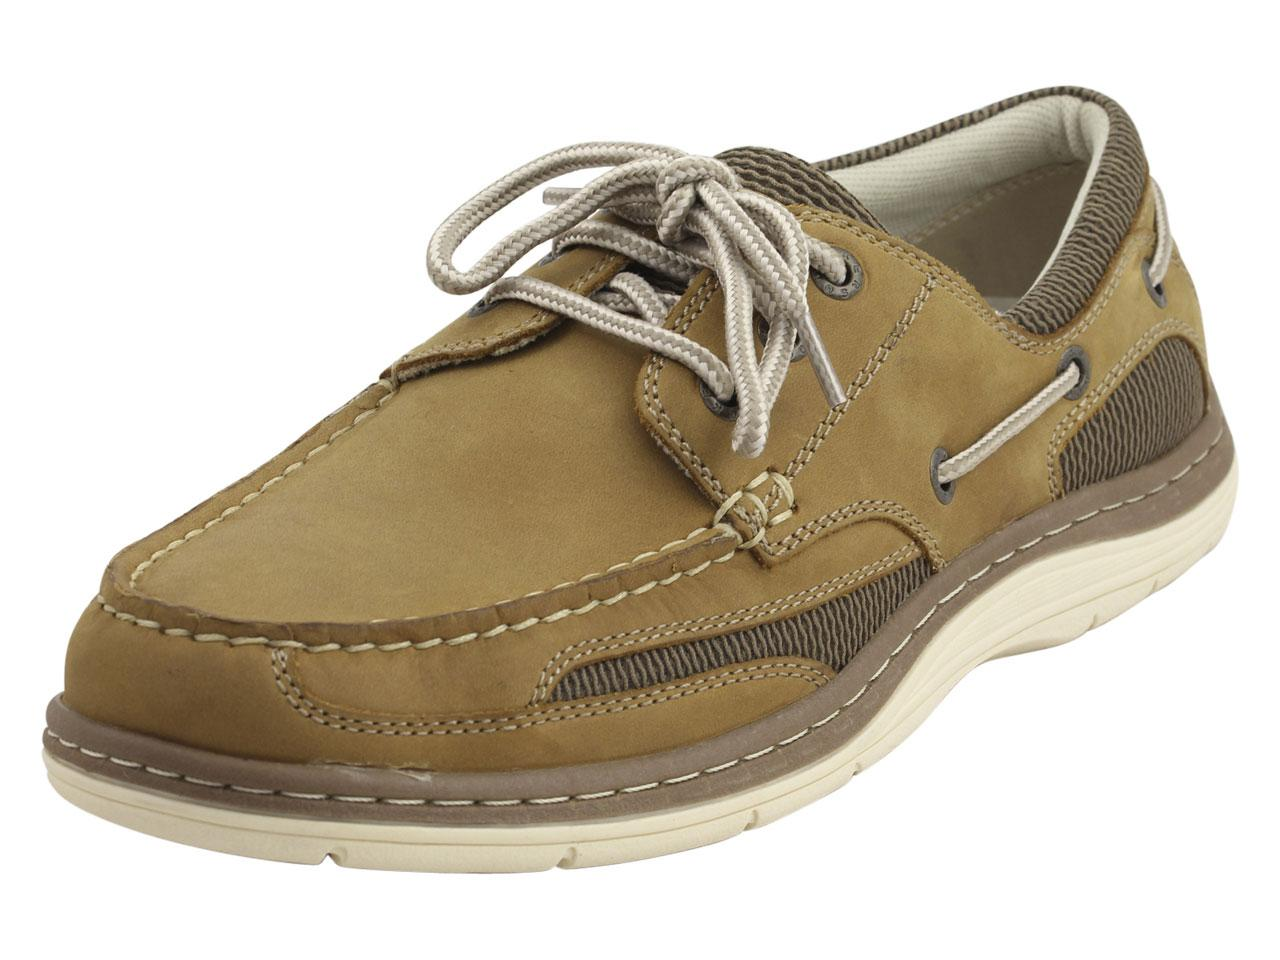 Image of Dockers Men's Lakeport Memory Foam Loafers Boat Shoes - Brown - 8.5 D(M) US